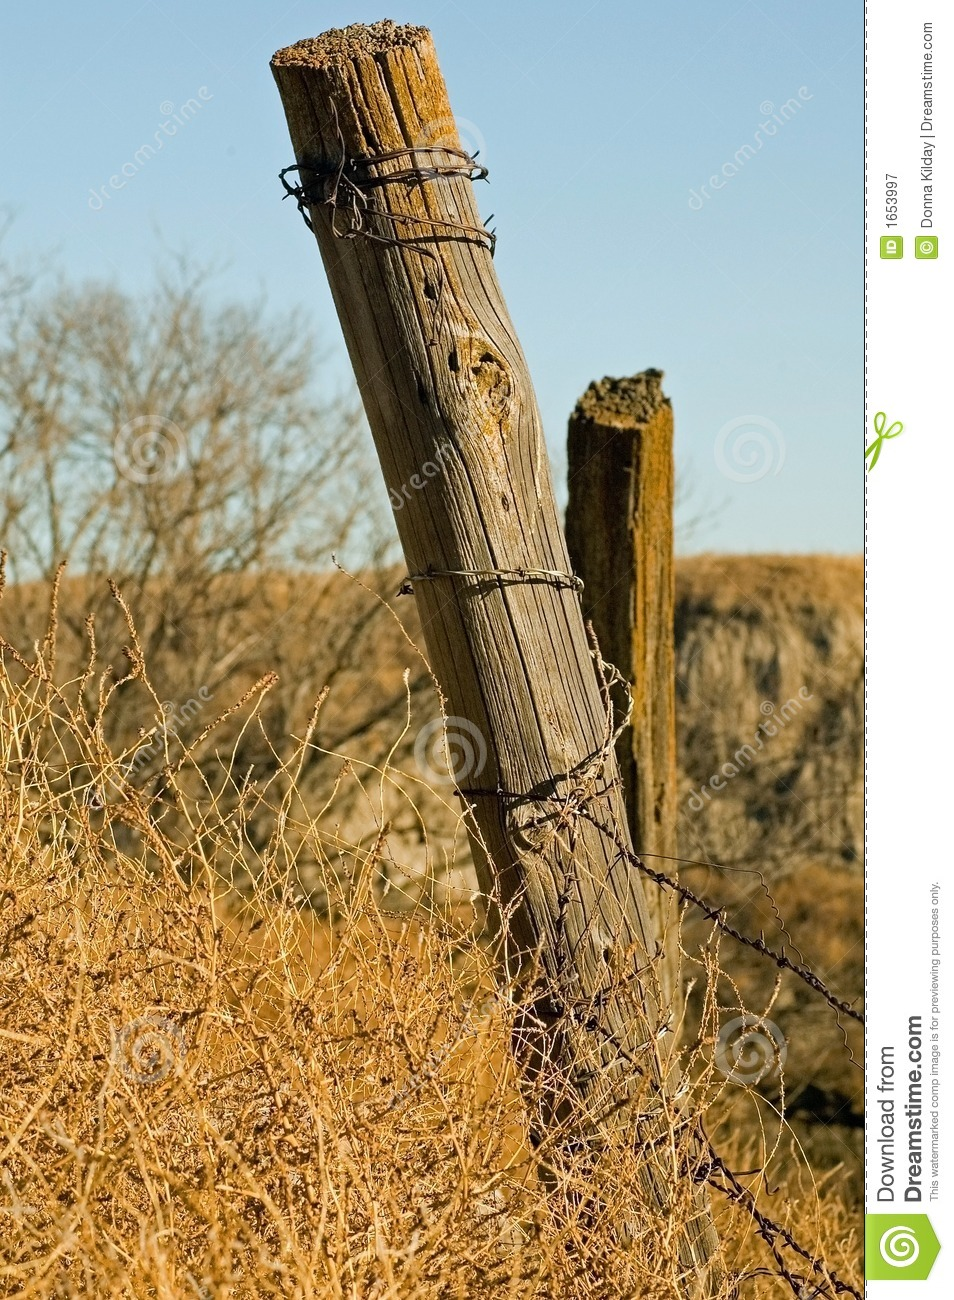 old-fence-post-1653997.jpg